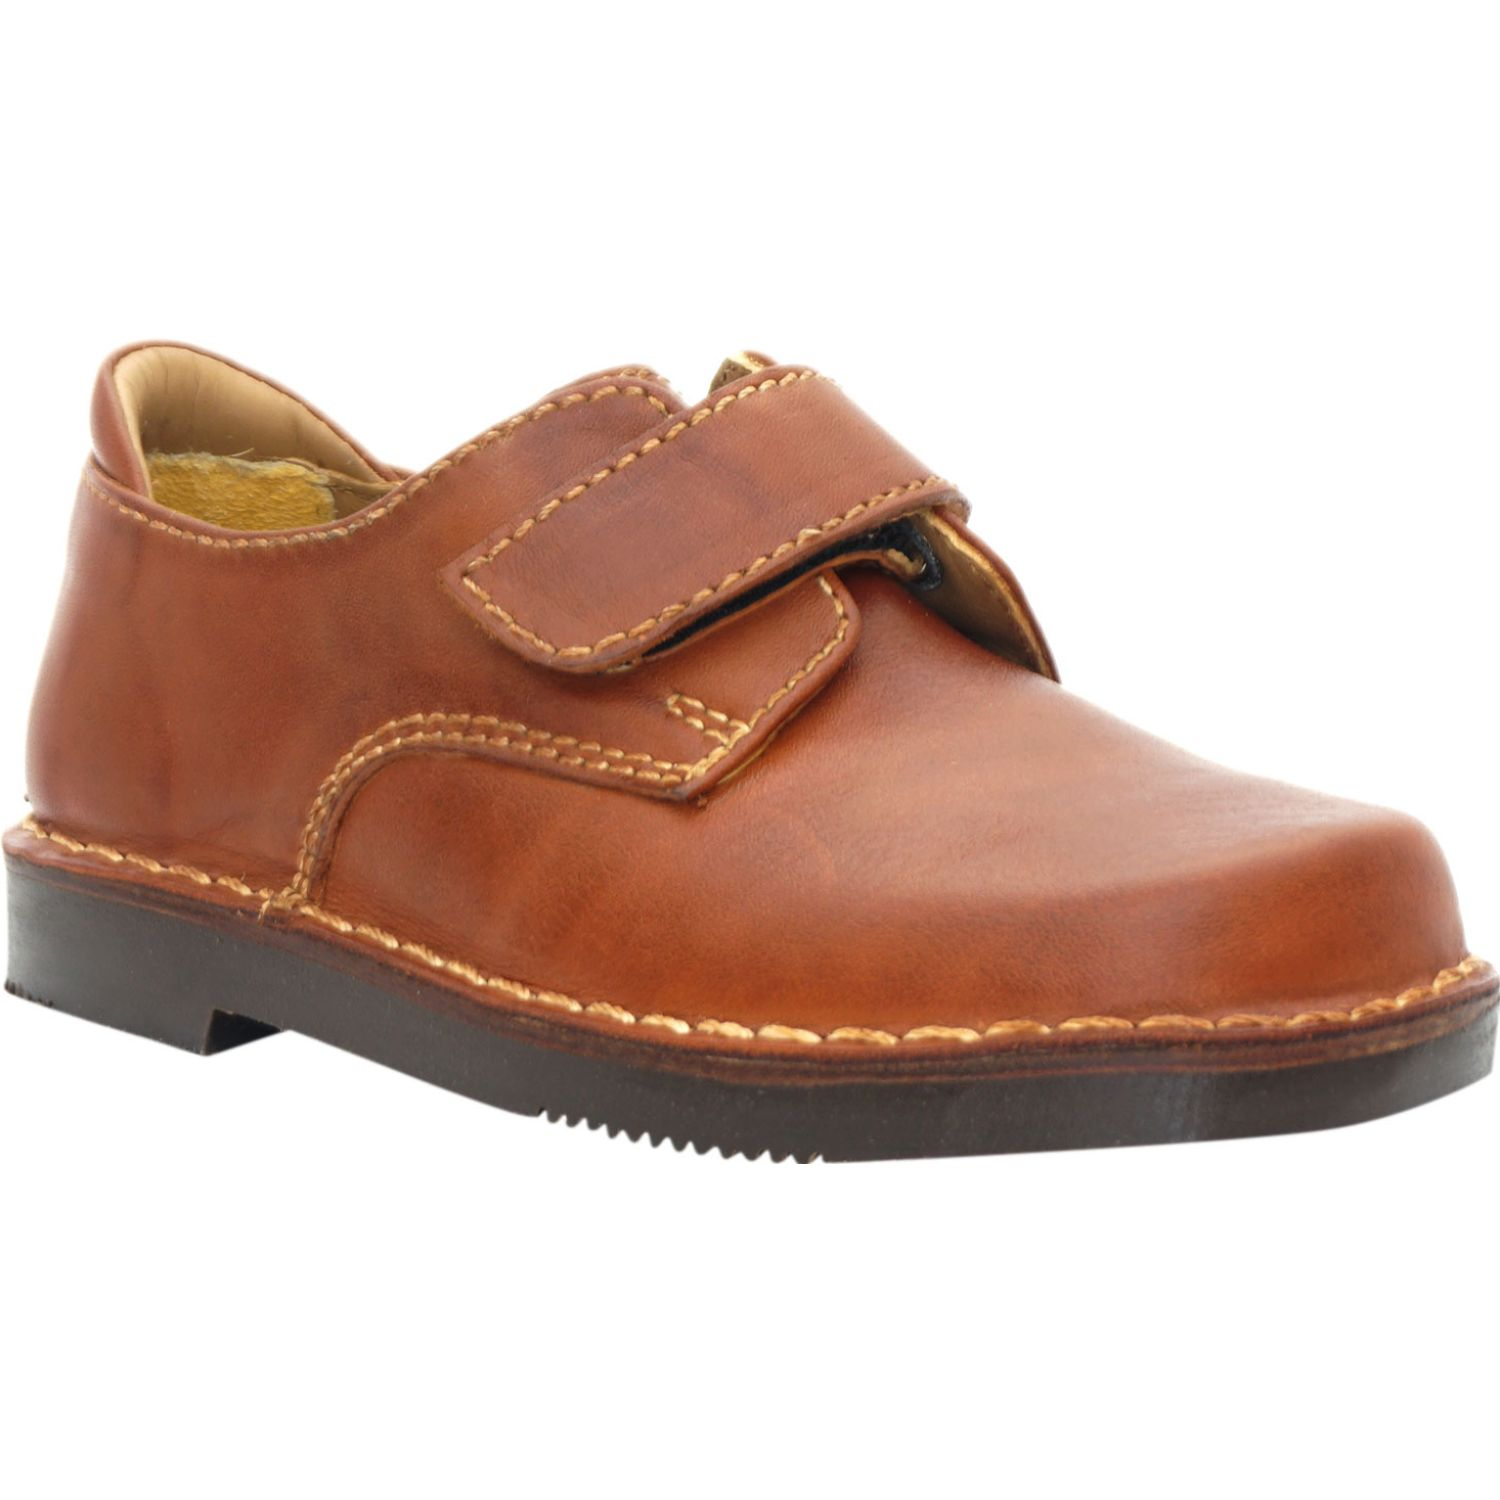 LumberJack 012039-L2K Cobre Oxfords